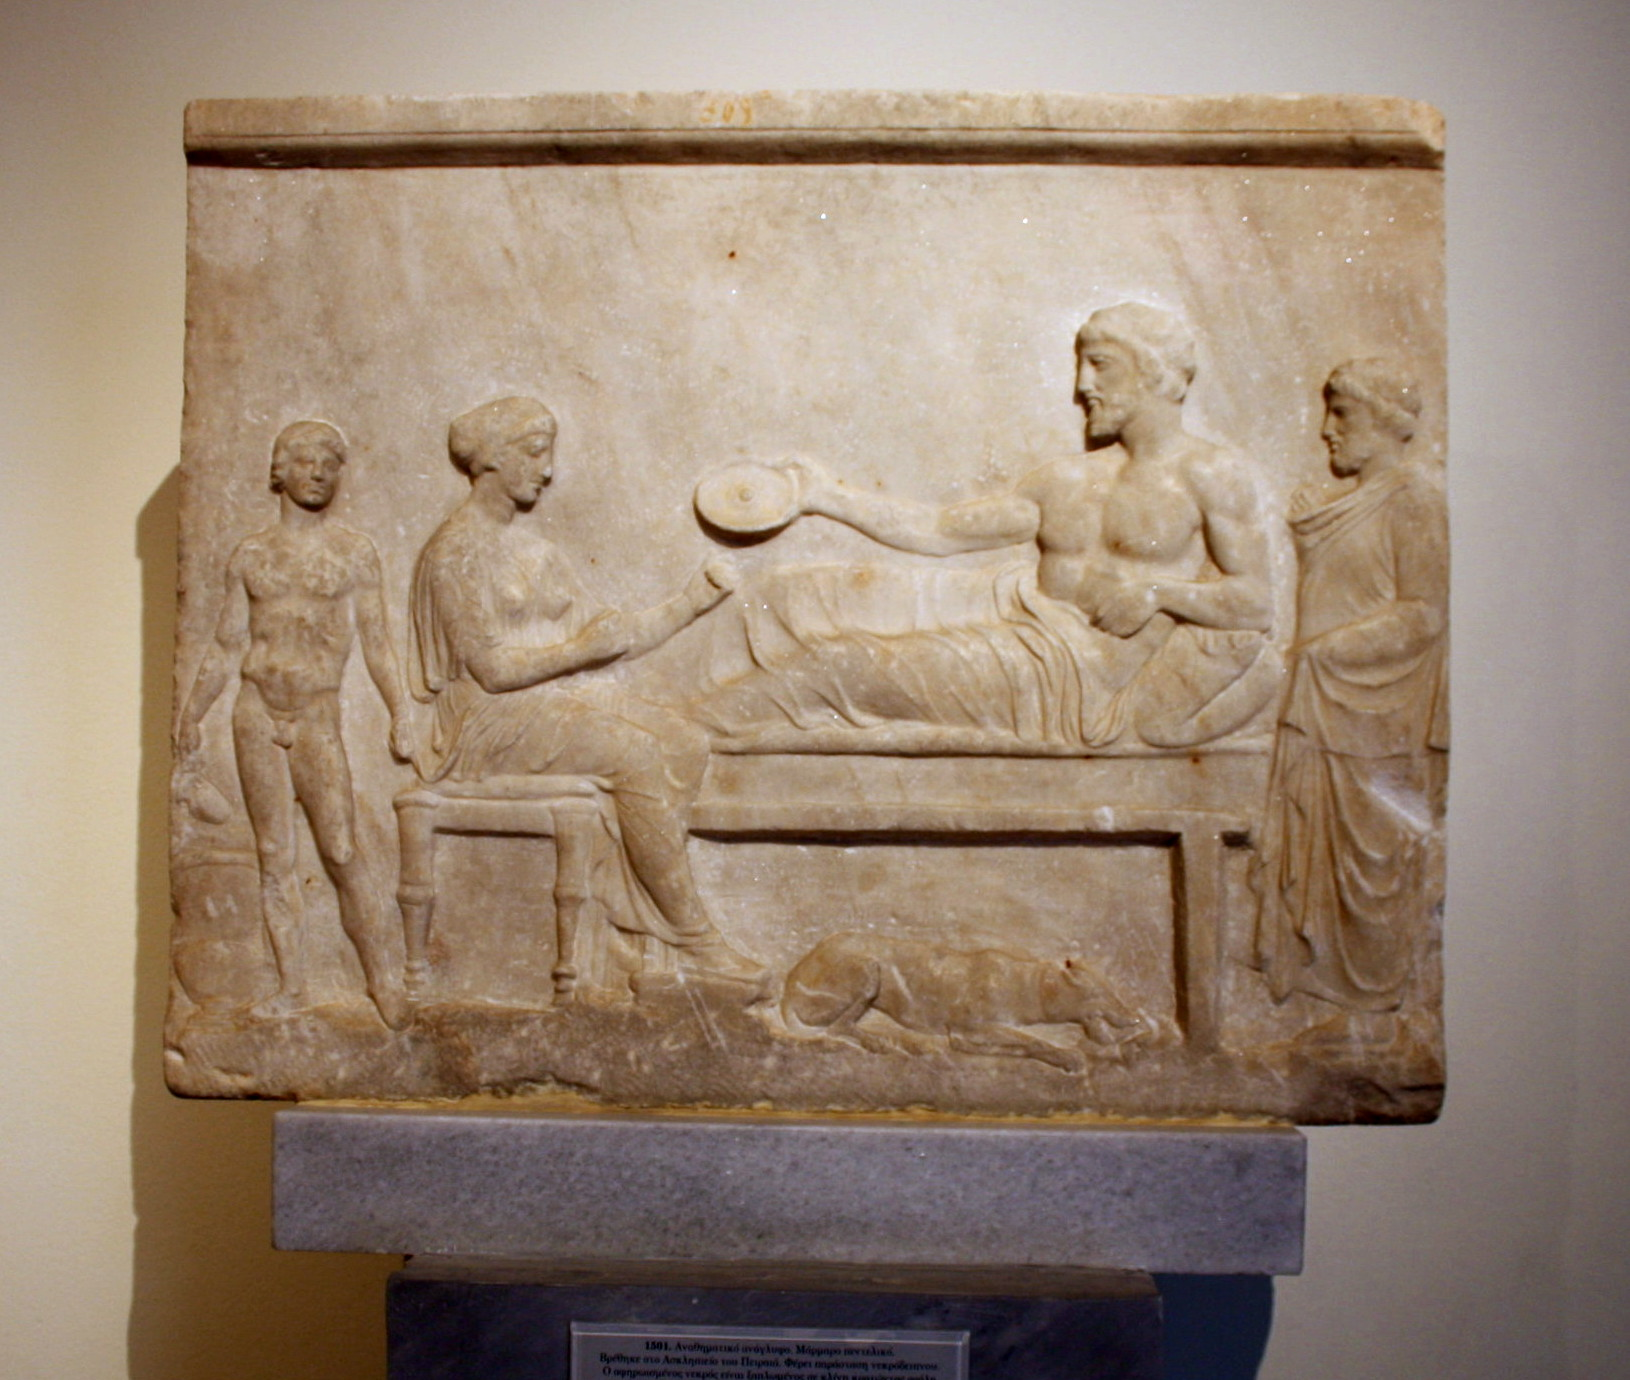 a research on gender roles in ancient greece Sexuality, gender, associated cultural values in ancient greece and rome readings women's roles in ancient web resources valid reference / research.